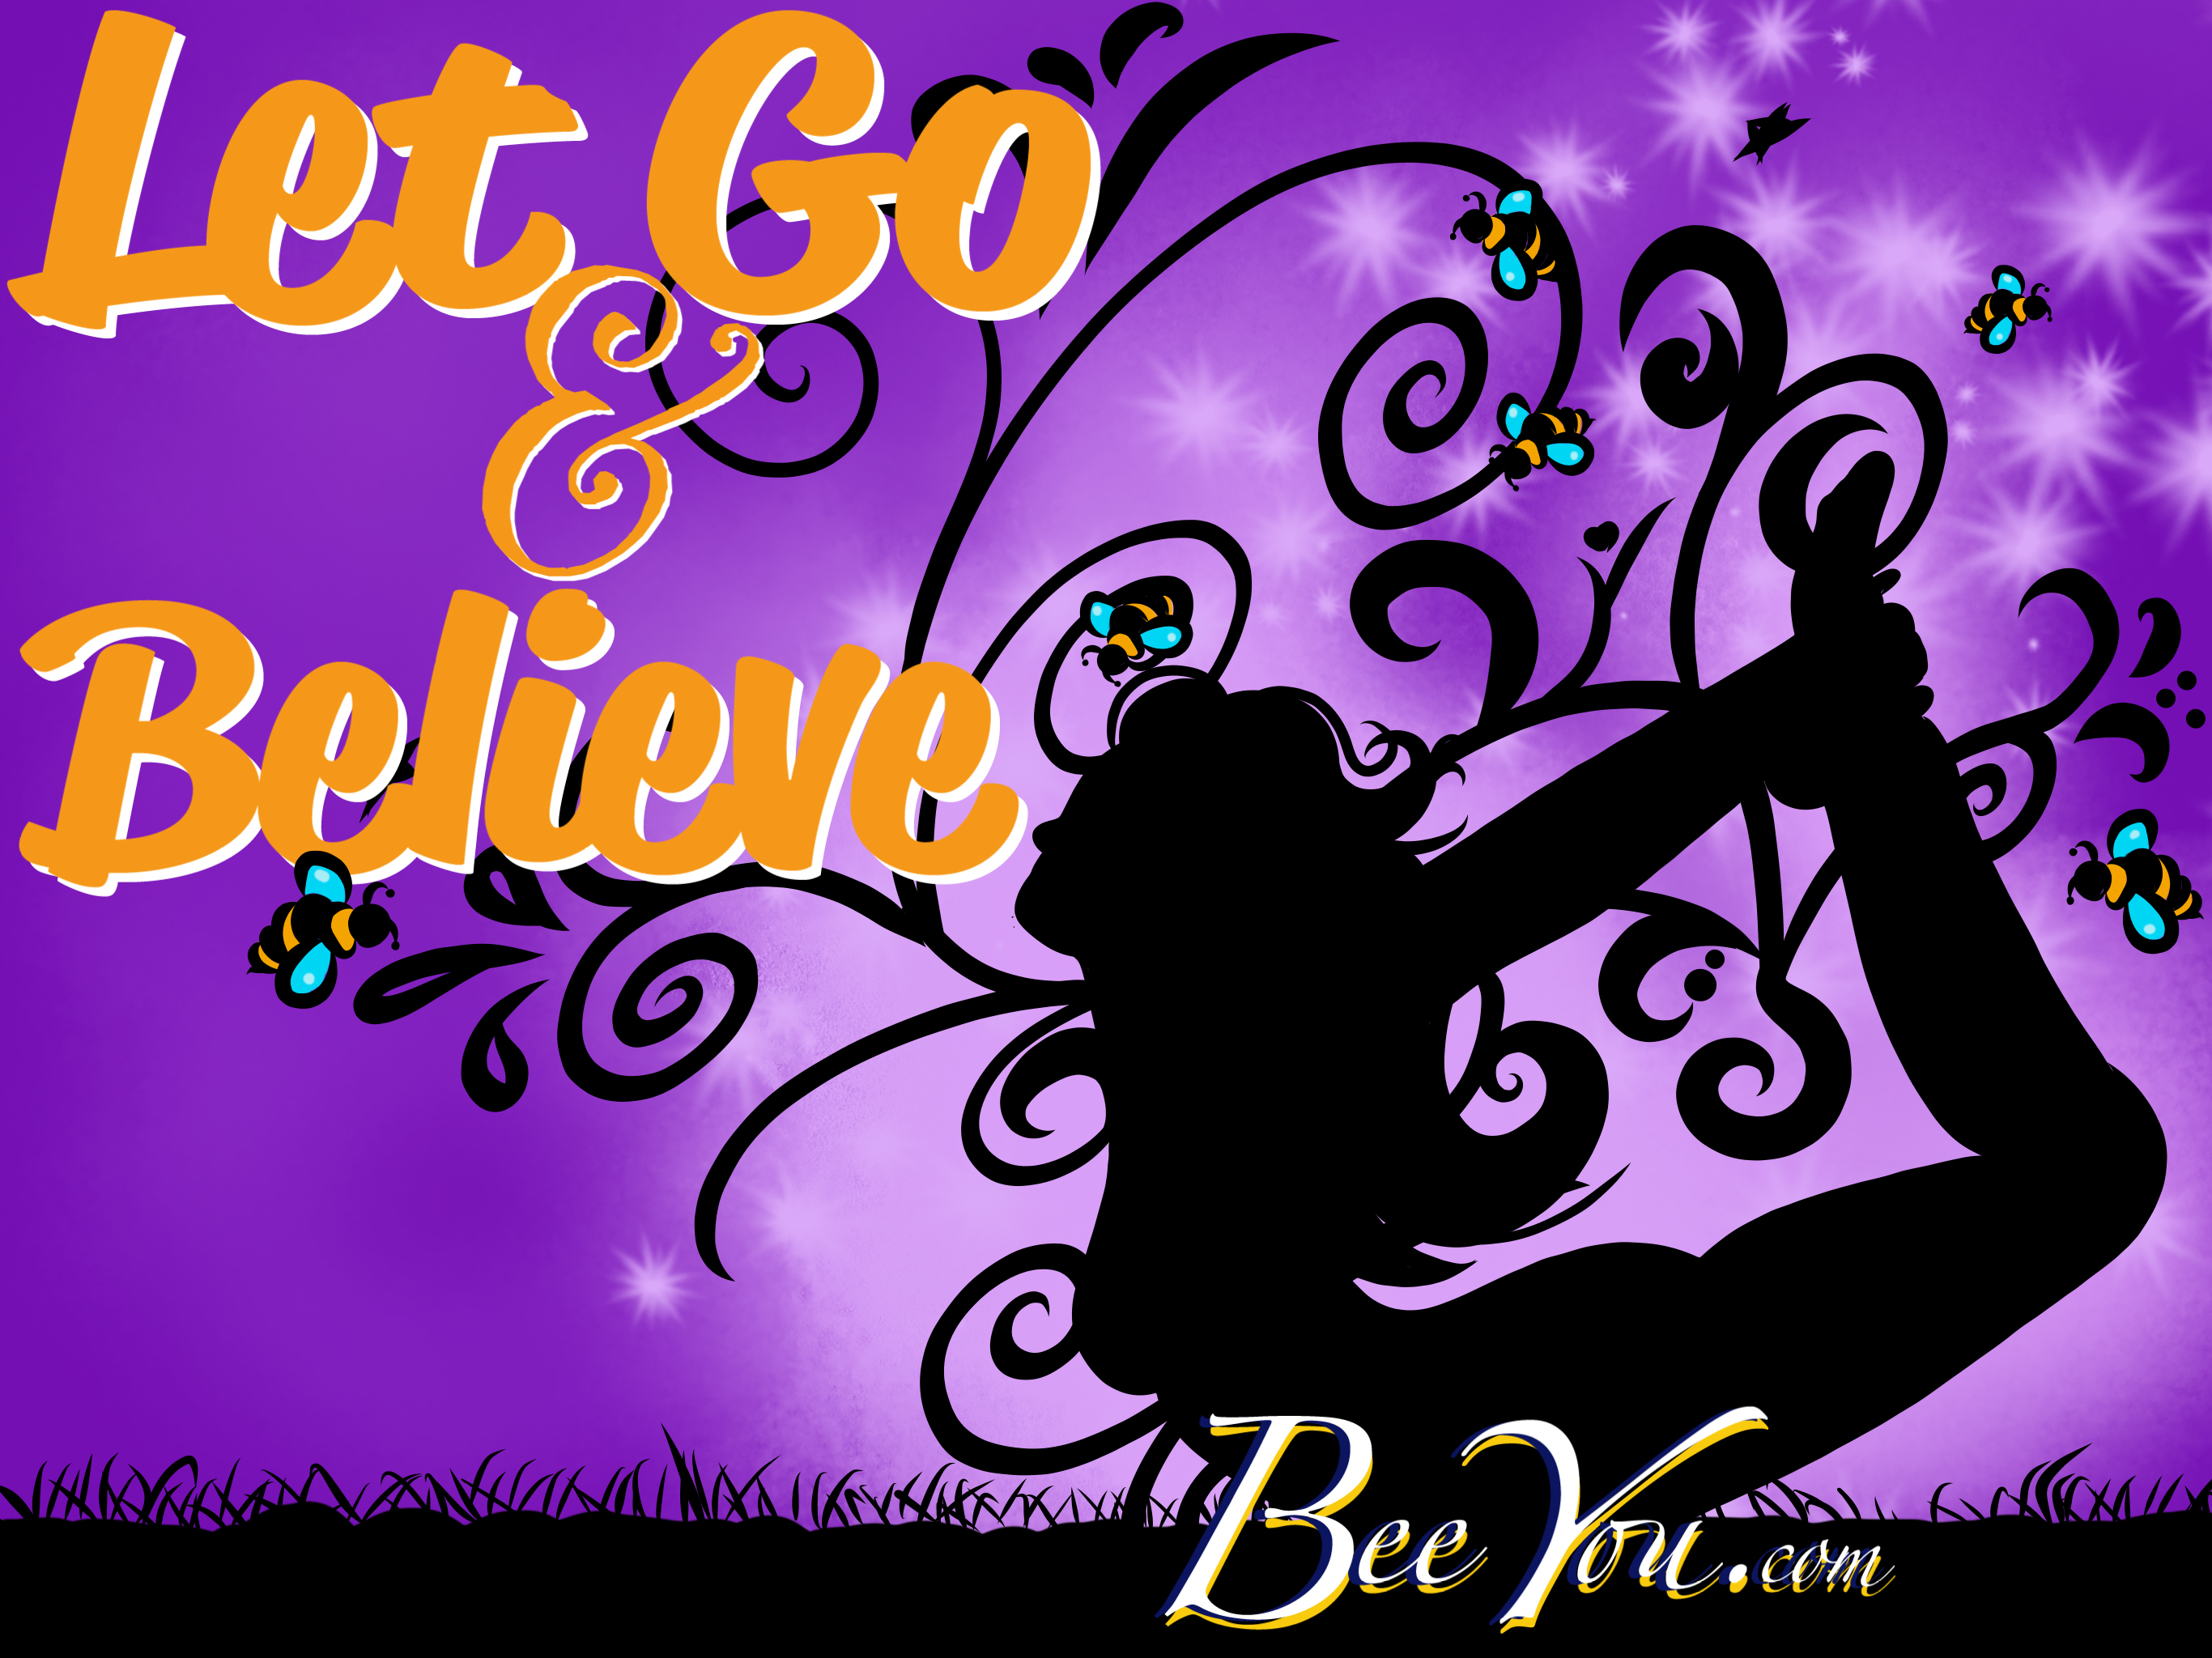 Bee You Yoga and Wellness - Yoga Therapy, Yoga, Yoga for anxiety, Yoga for depression, Yoga for recovery, y12sr, donation based yoga & meditation for everyone, kids yoga, BARRE, Sadie Nardini Yoga Shred Fusion, Full body conditioning, Yoga Nidra, Swedish massage, myofascial release, PSYCH-K, Reiki, BARRE, ZUMBA, Yoga Shred, Bee You Yoga, Yoga 07885, Yoga 07869, Randolph, Roxbury, Mine Hill, New Jersey, North Jersey, Morris County, Yoga Morris County, Buti Yoga, yogassage, theta healing, therapeutic massage, massage gift certifcates, 07803,07806,07847,07802,07869,07876,07852,07856,07850,07885,07845,07801,07970,07857,07843,07836,07834,07842,07926,07950,07878,07945,07849,07874,07837,07866,07930,07828,07046,07963,07962,07927,07960,07821,07005,07981,07054,07924,07961,07820,07034,07840,07438,07931,07976,07977,07871,07879,07934,07939,07045,07870,07853,07940,07935,07932,07936,07839,07082,07058,07405,07439,07979,07933,07920,07946,07980,07938,07928,07880,07435,08858,07830,07039